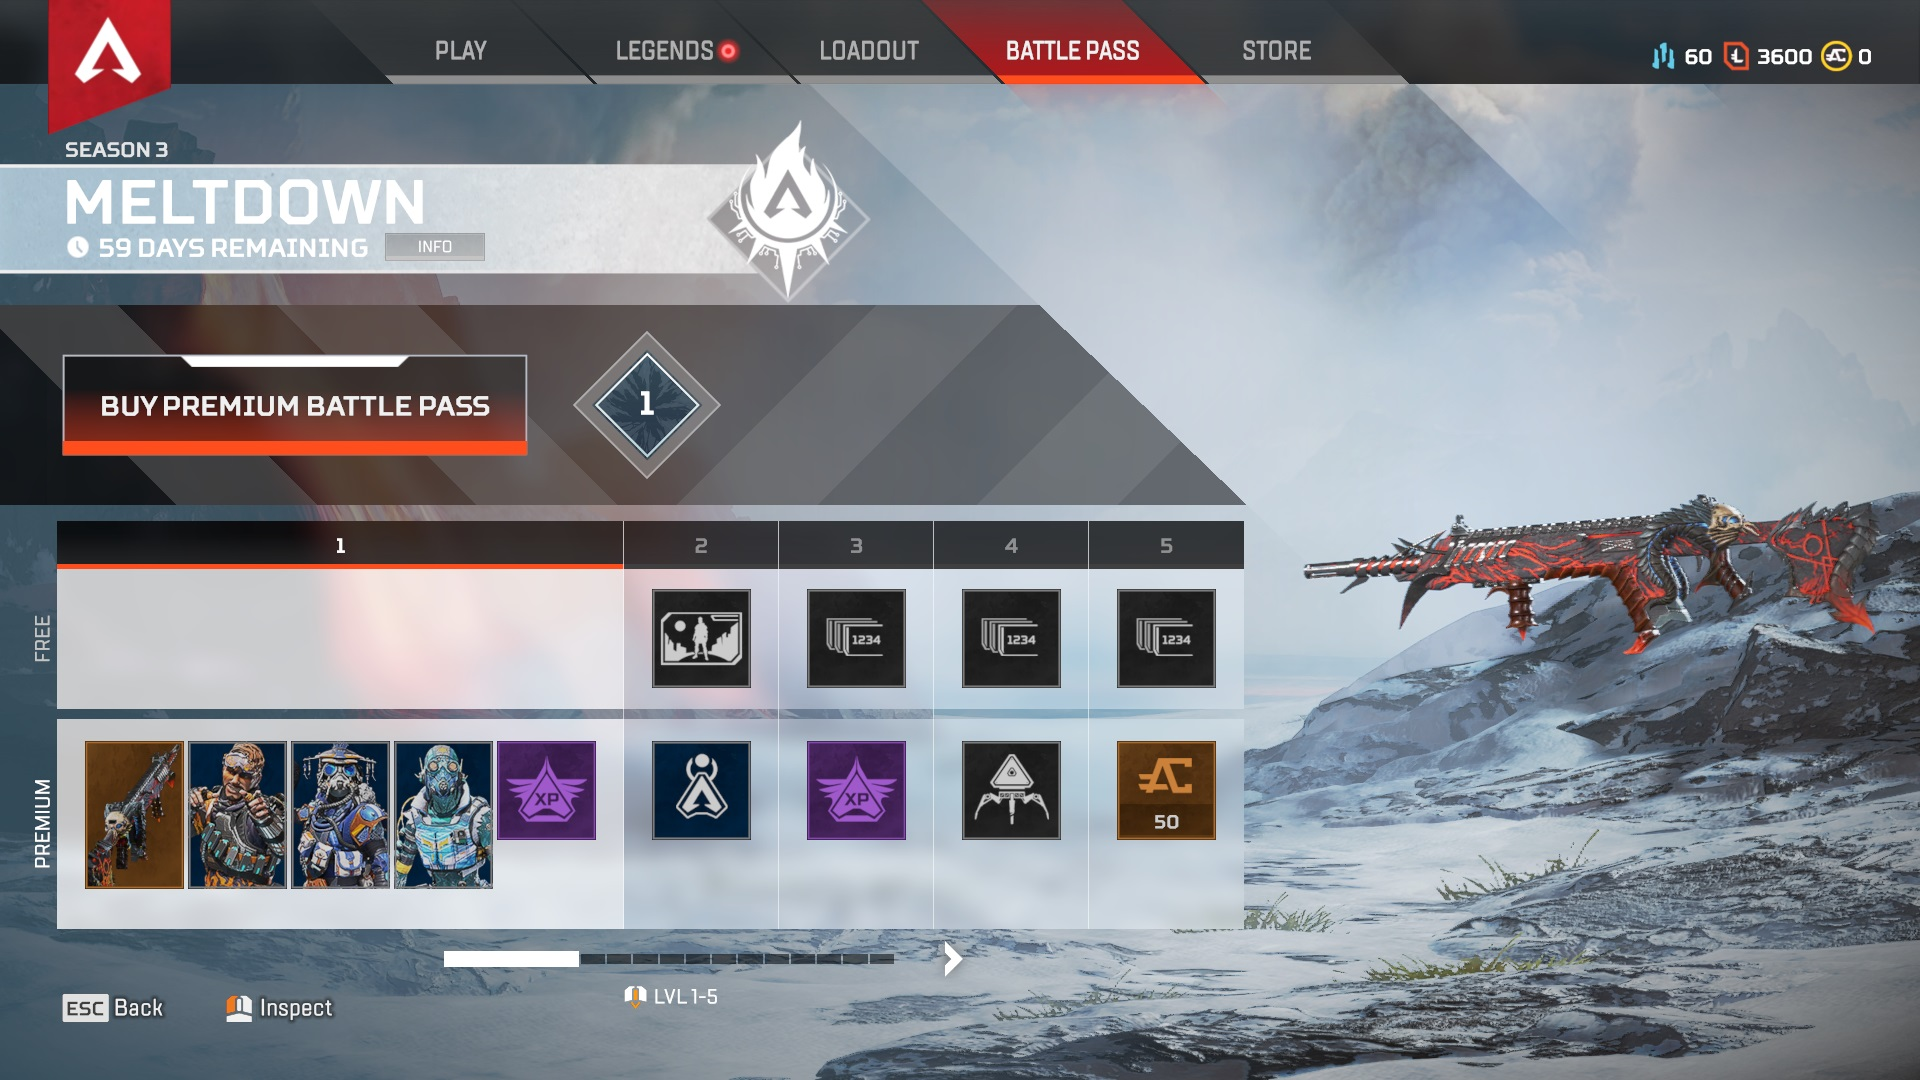 Apex Legends Battlepass in gambling mechanics